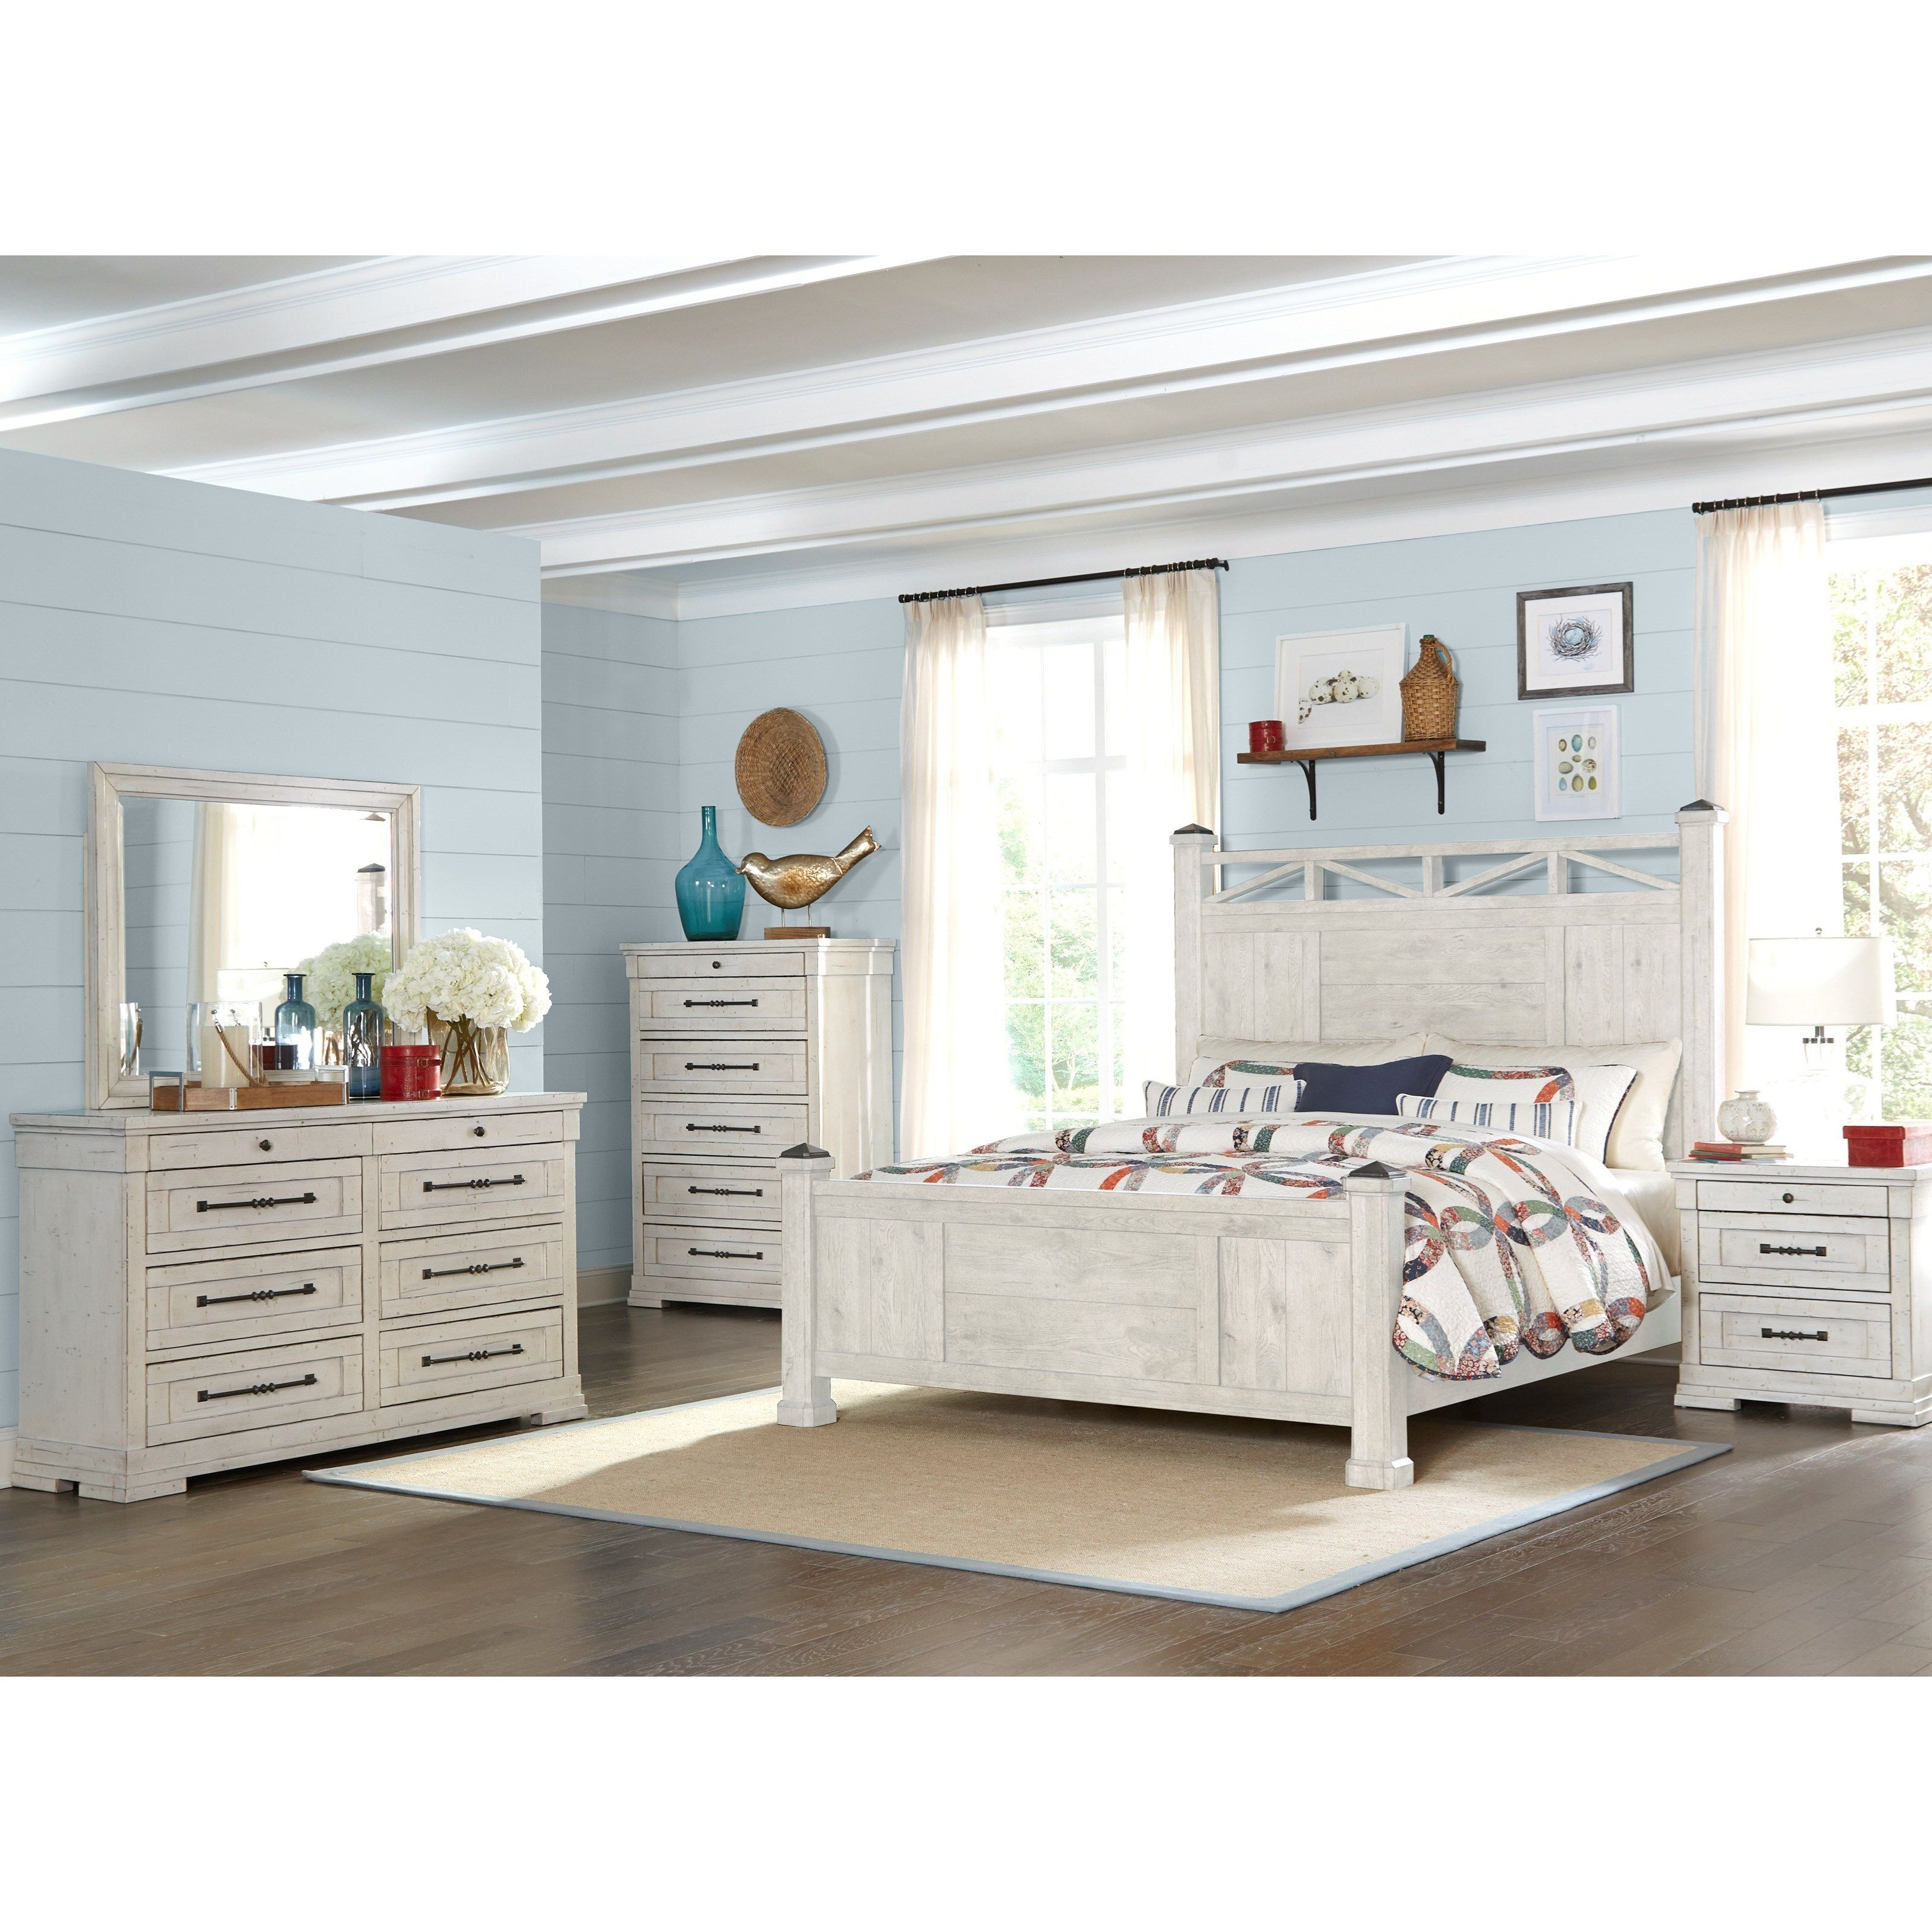 Coming Home Queen Bedroom Group By Trisha Yearwood Home Collection By Klaussner At Powell S Furniture And Matt In 2020 King Bedroom Sets Bedroom Sets Queen Bedroom Set